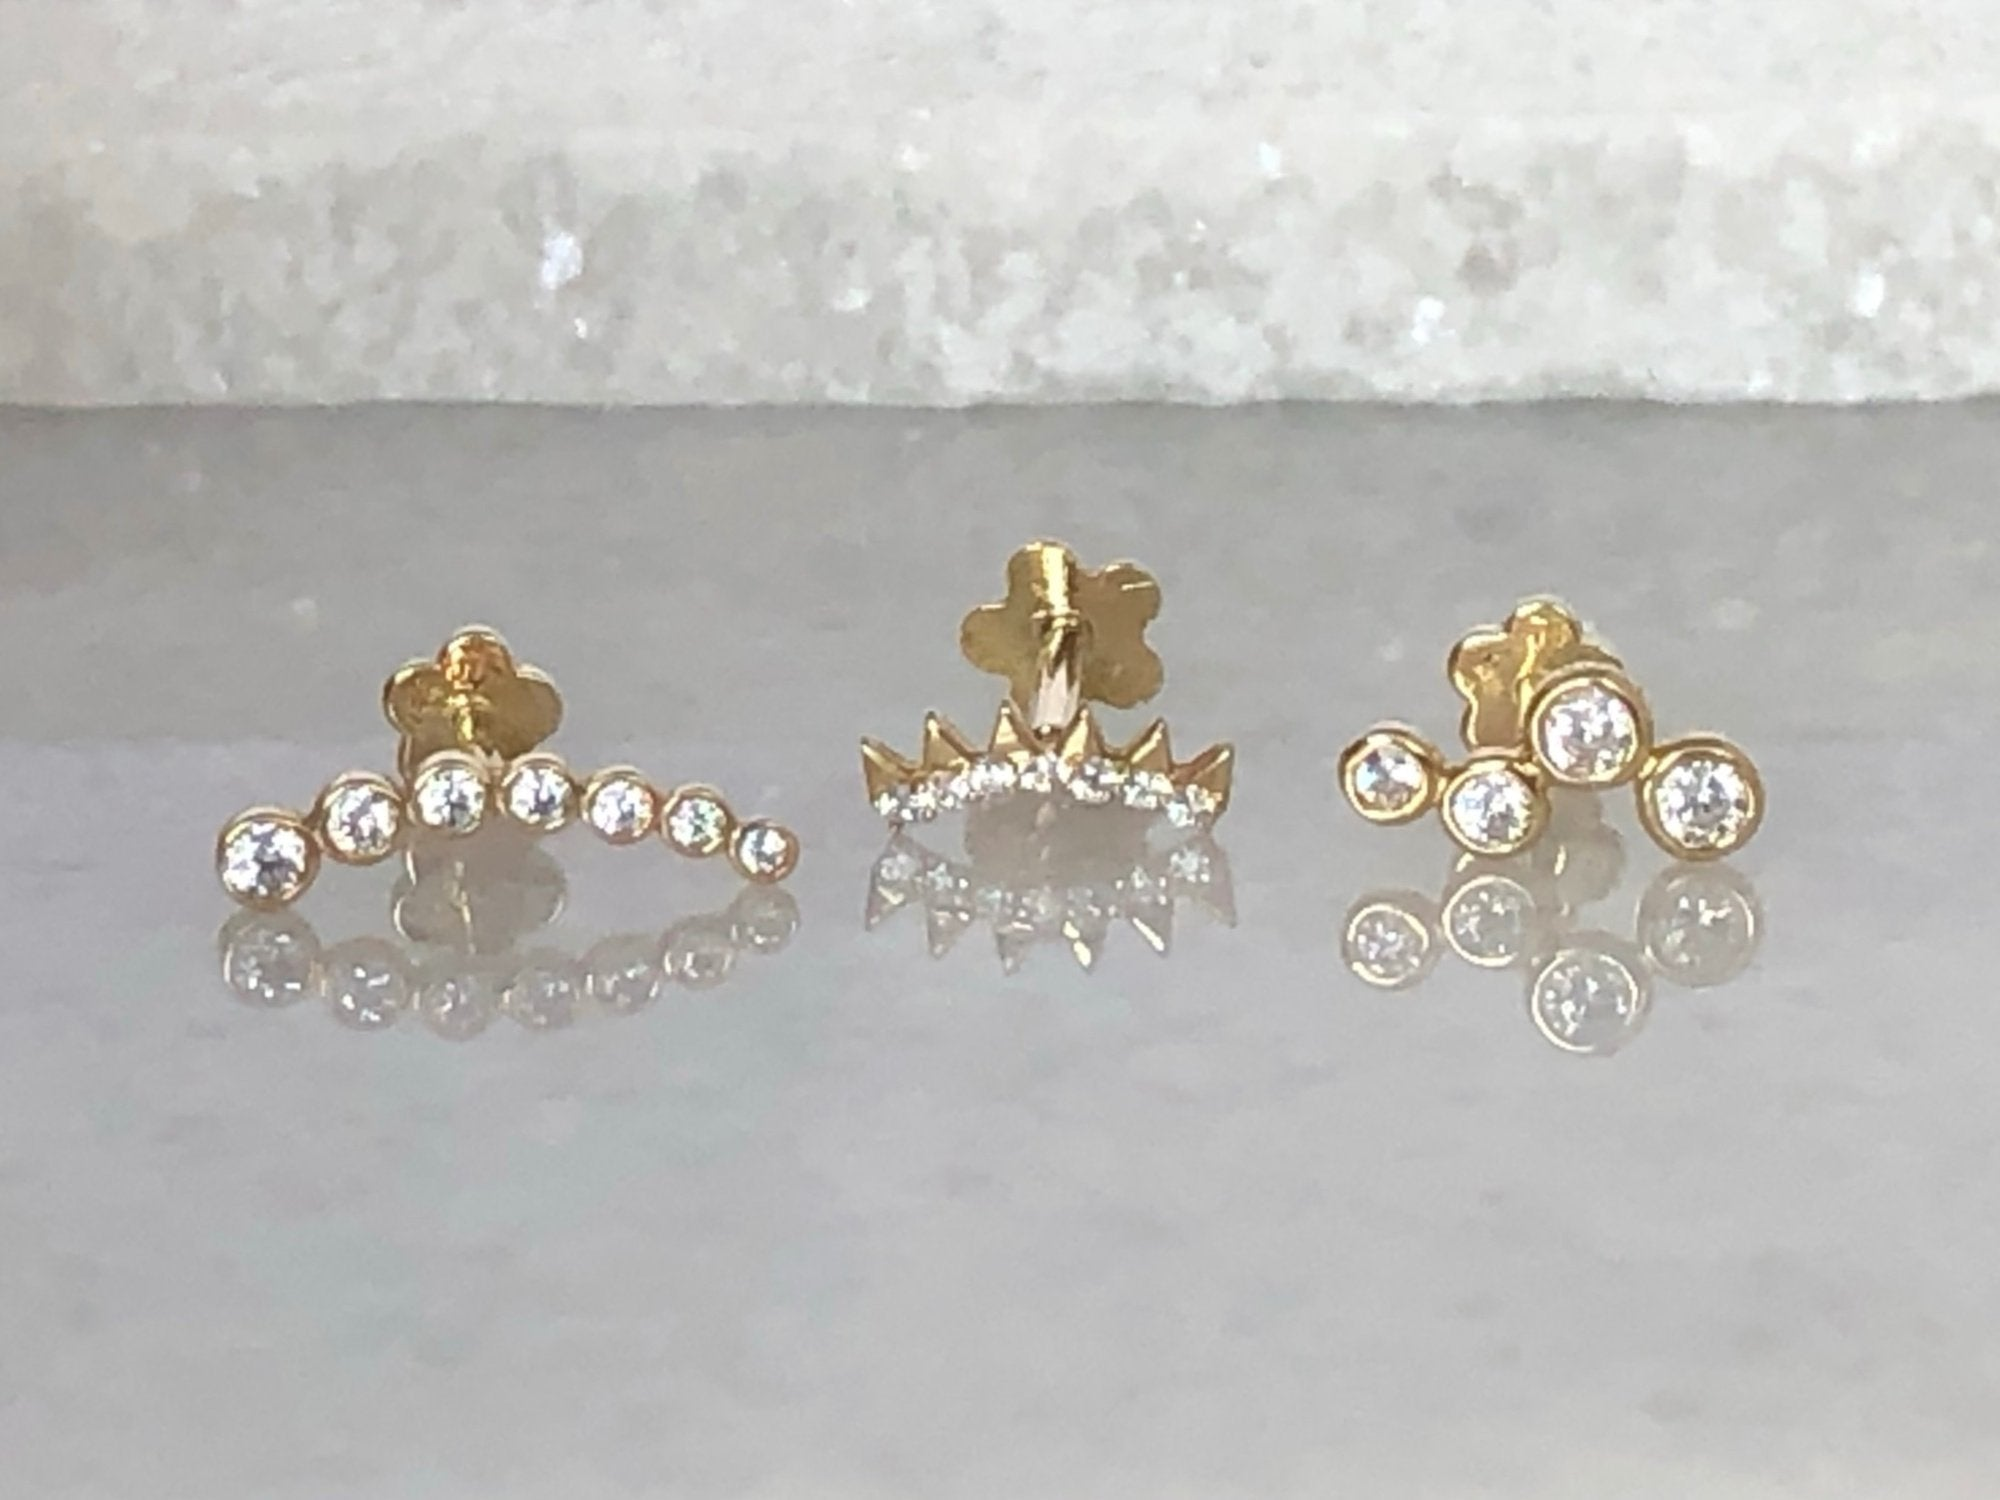 Climber Stud Earring Group | Piercing Earrings | Solid Gold Hypoallergenic Jewelry | Helix, Tragus, Cartilage | Two of Most Fine Jewelry